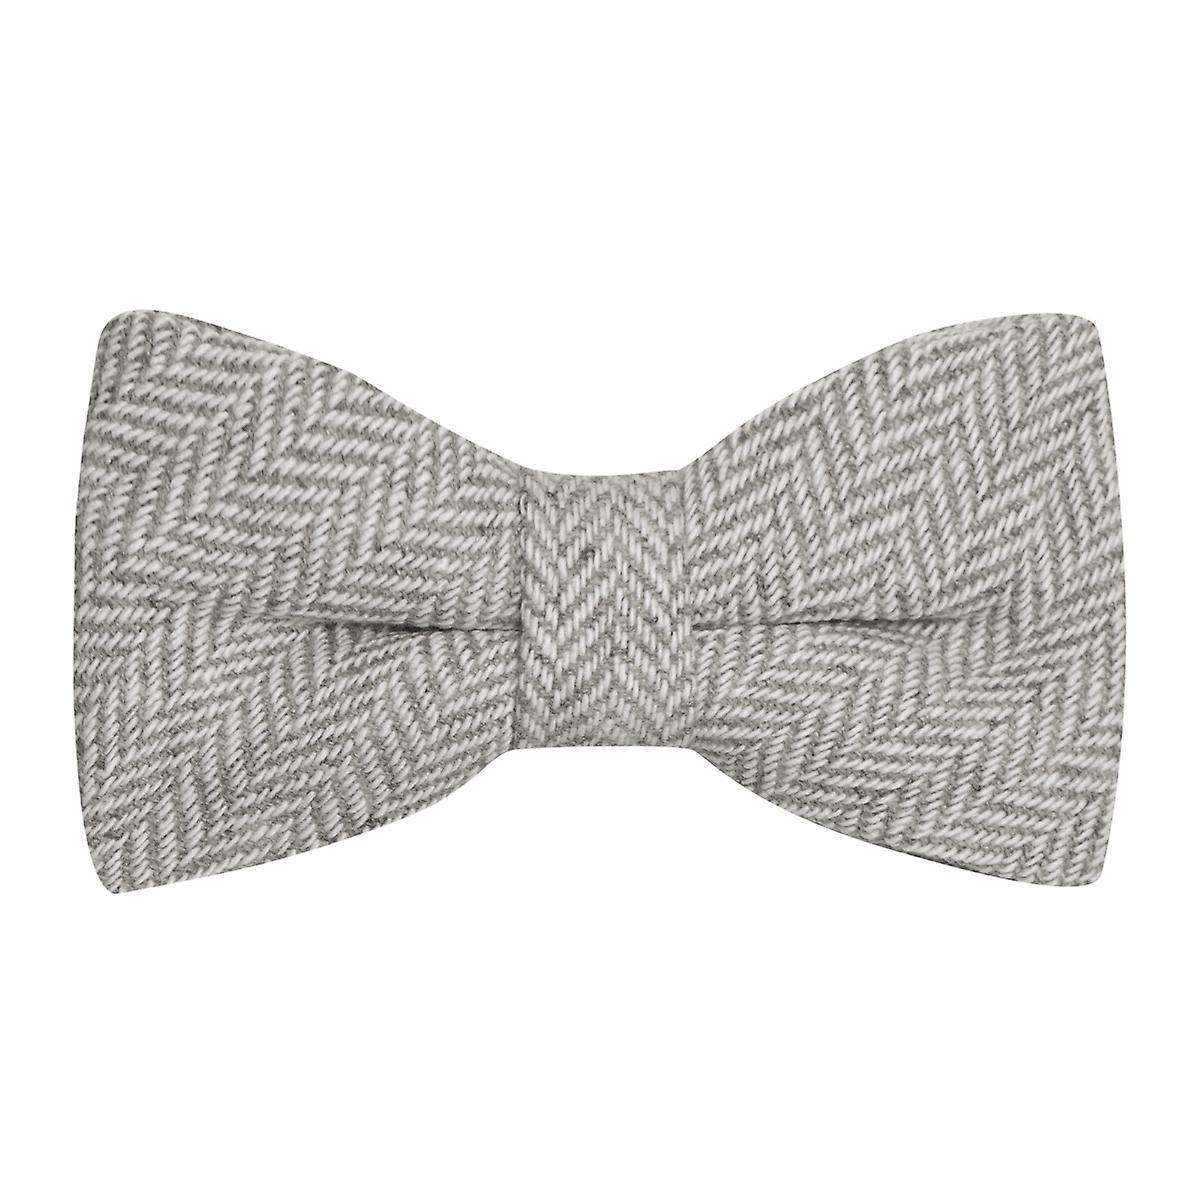 Silver Grey & Cream Herringbone Bow Tie